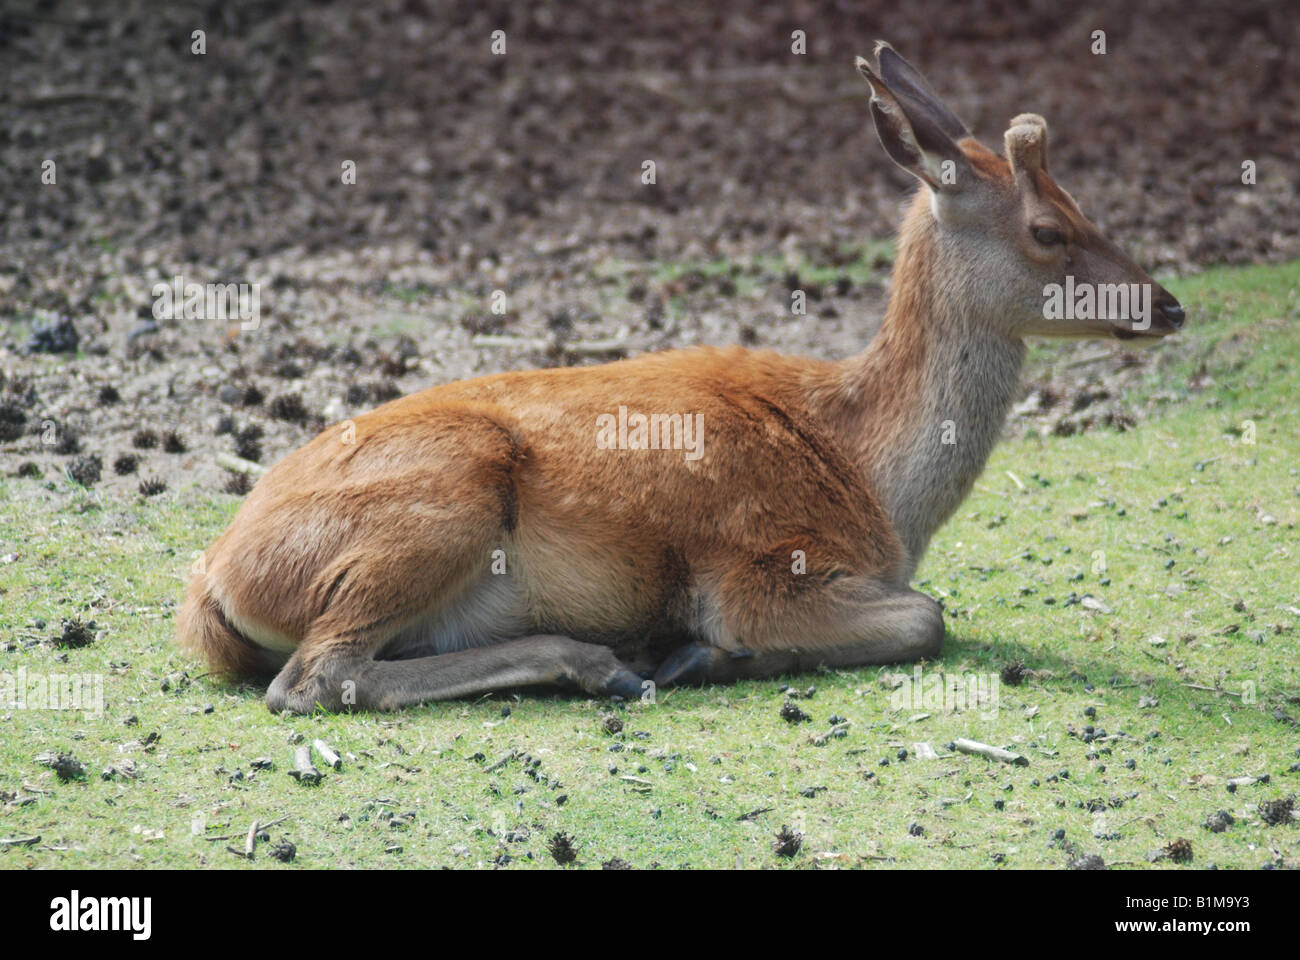 baby deer sitting on ground stub antlers stock photo royalty free